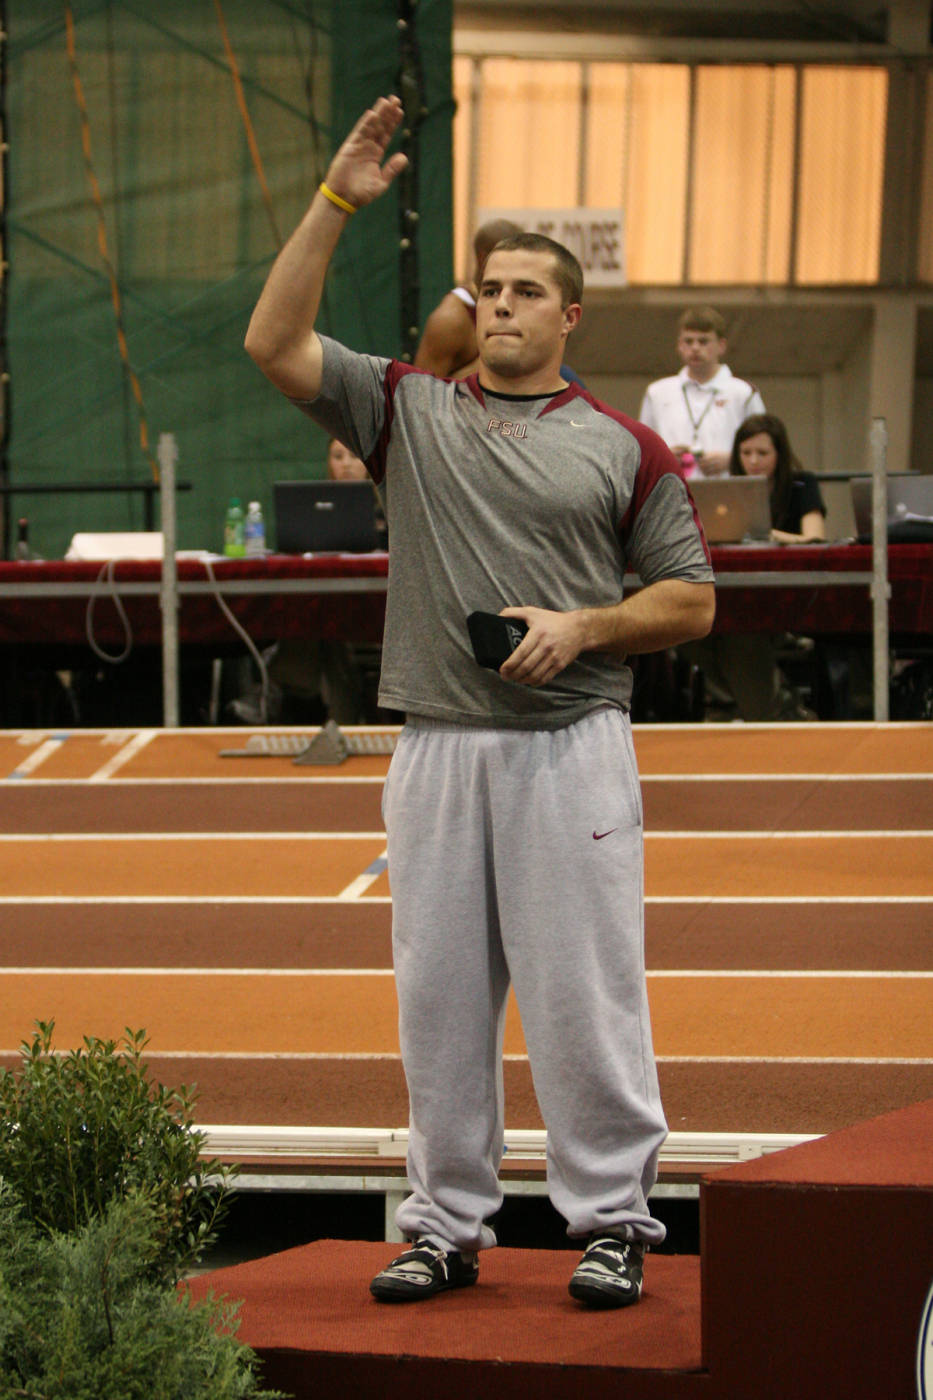 The 2009 ACC Indoor Championships.